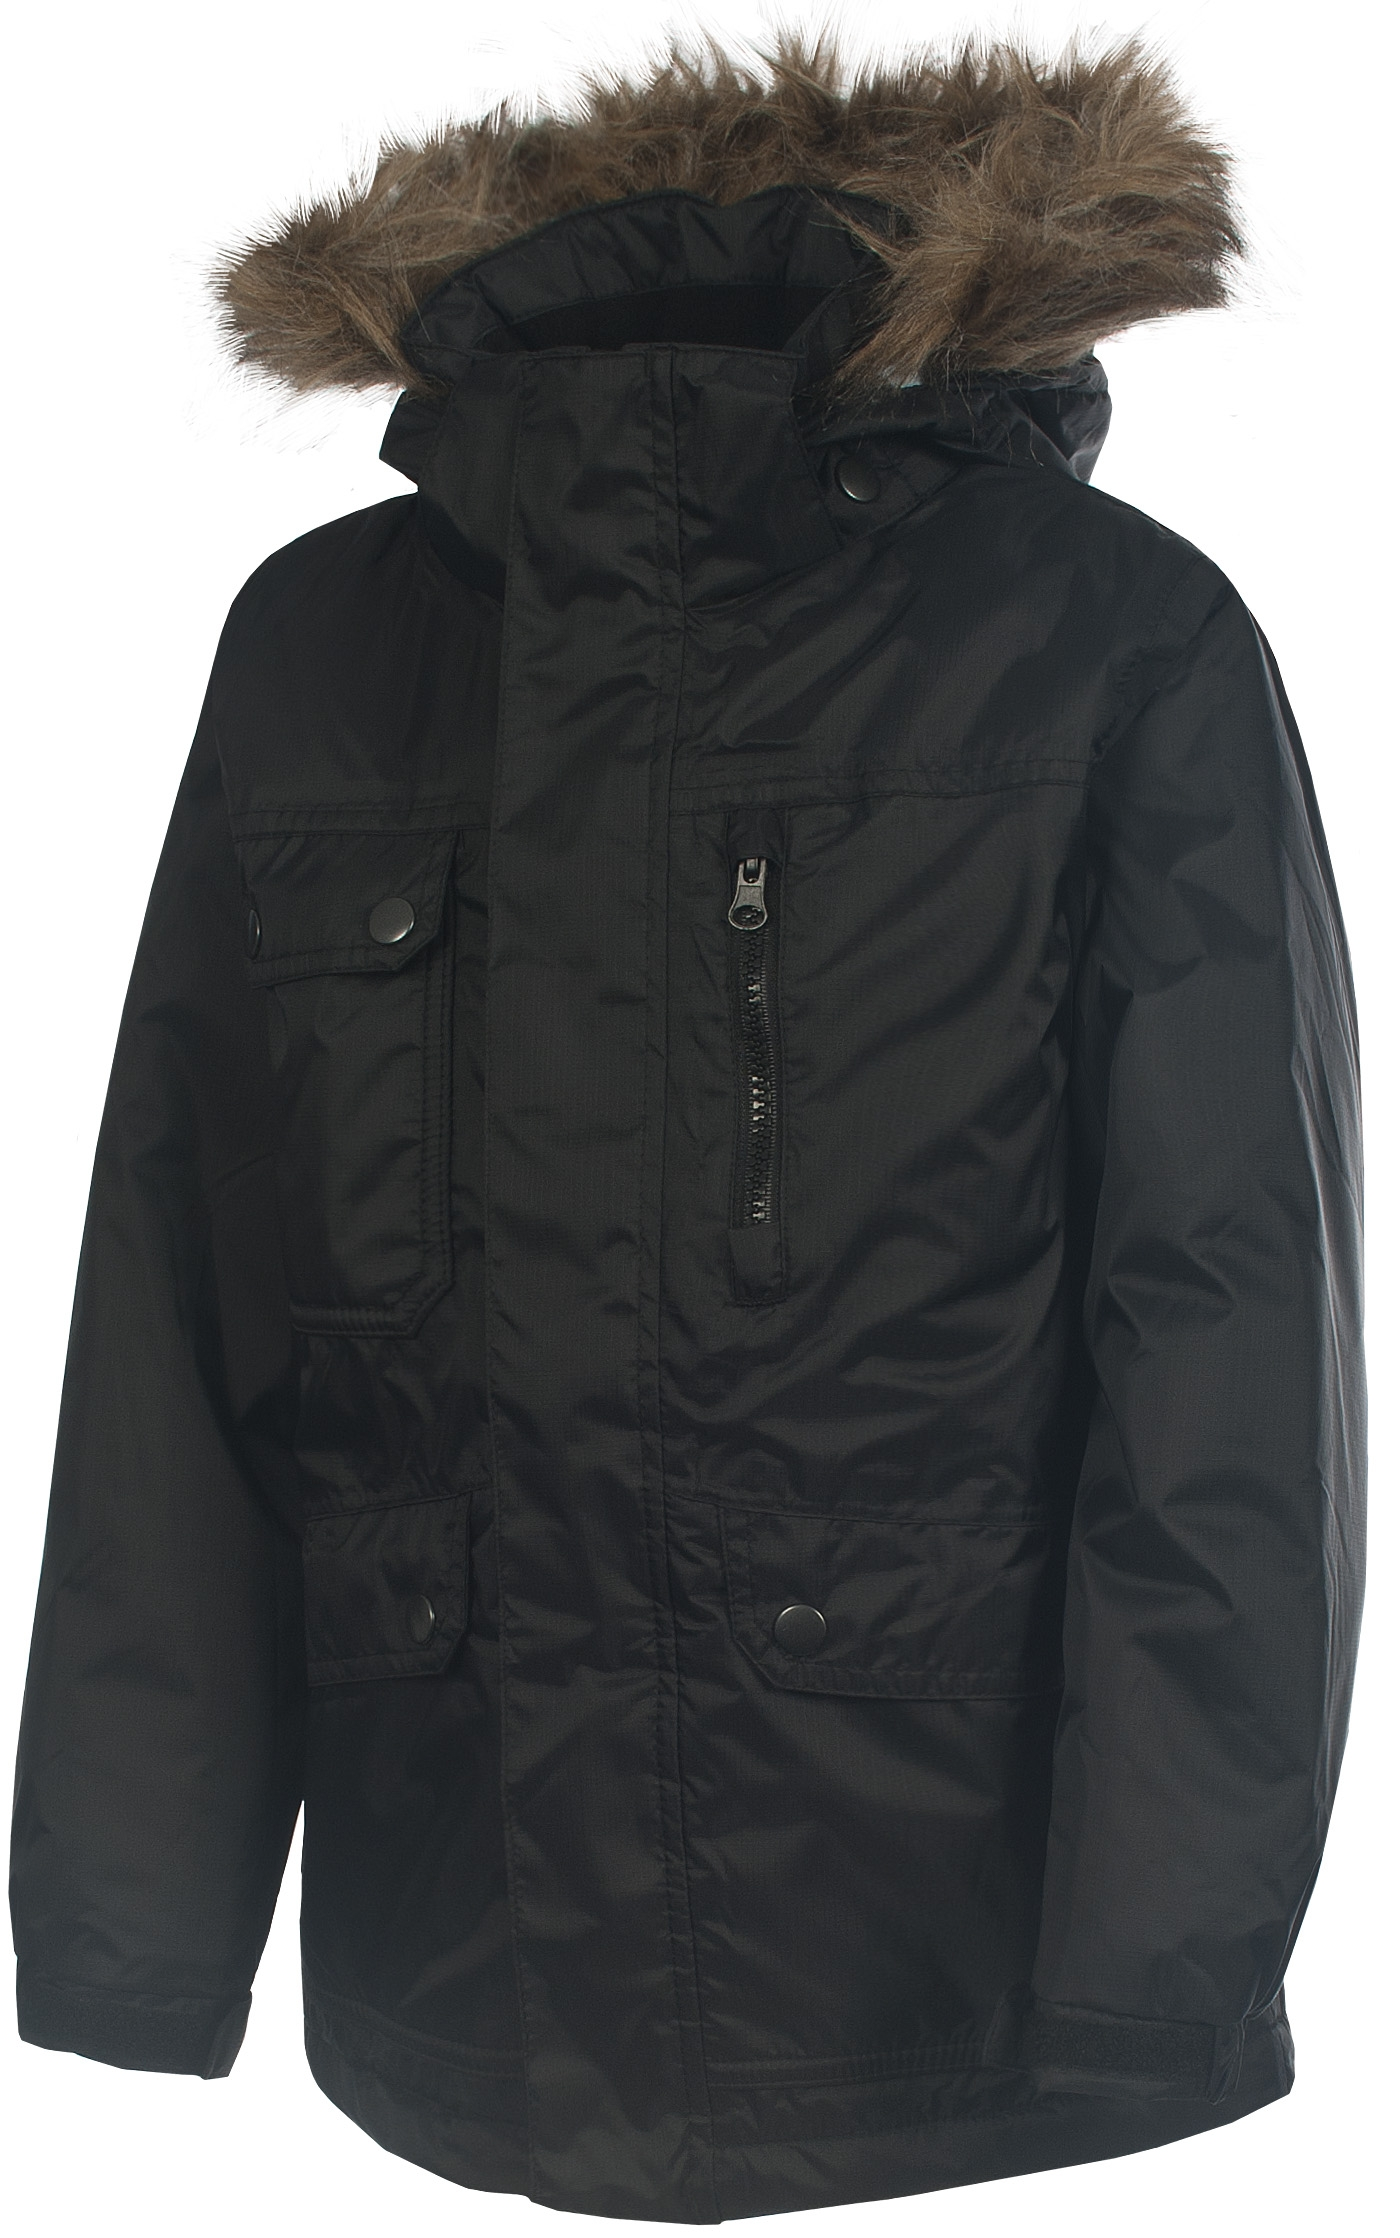 Boys-TRESPASS-ARNOTT-Waterproof-Thermal-Winter-Parka-Jacket-BLACK-Ages-2-12